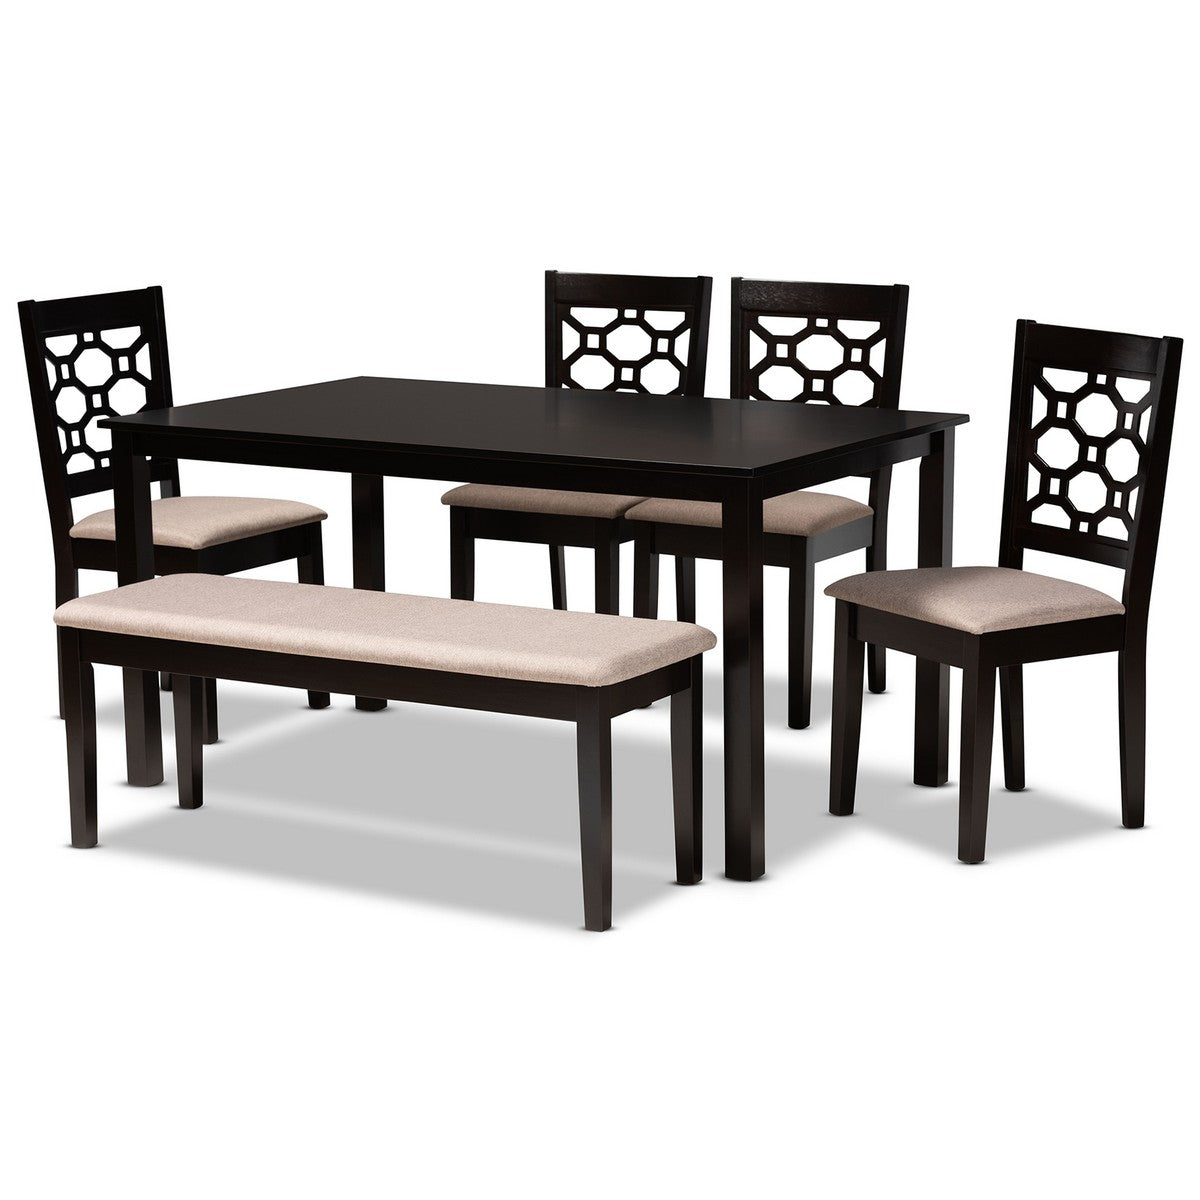 Baxton Studio Gabriel Modern and Contemporary Sand Fabric Upholstered and Dark Brown Finished Wood 6-Piece Dining Set Baxton Studio-Dining Sets-Minimal And Modern - 1